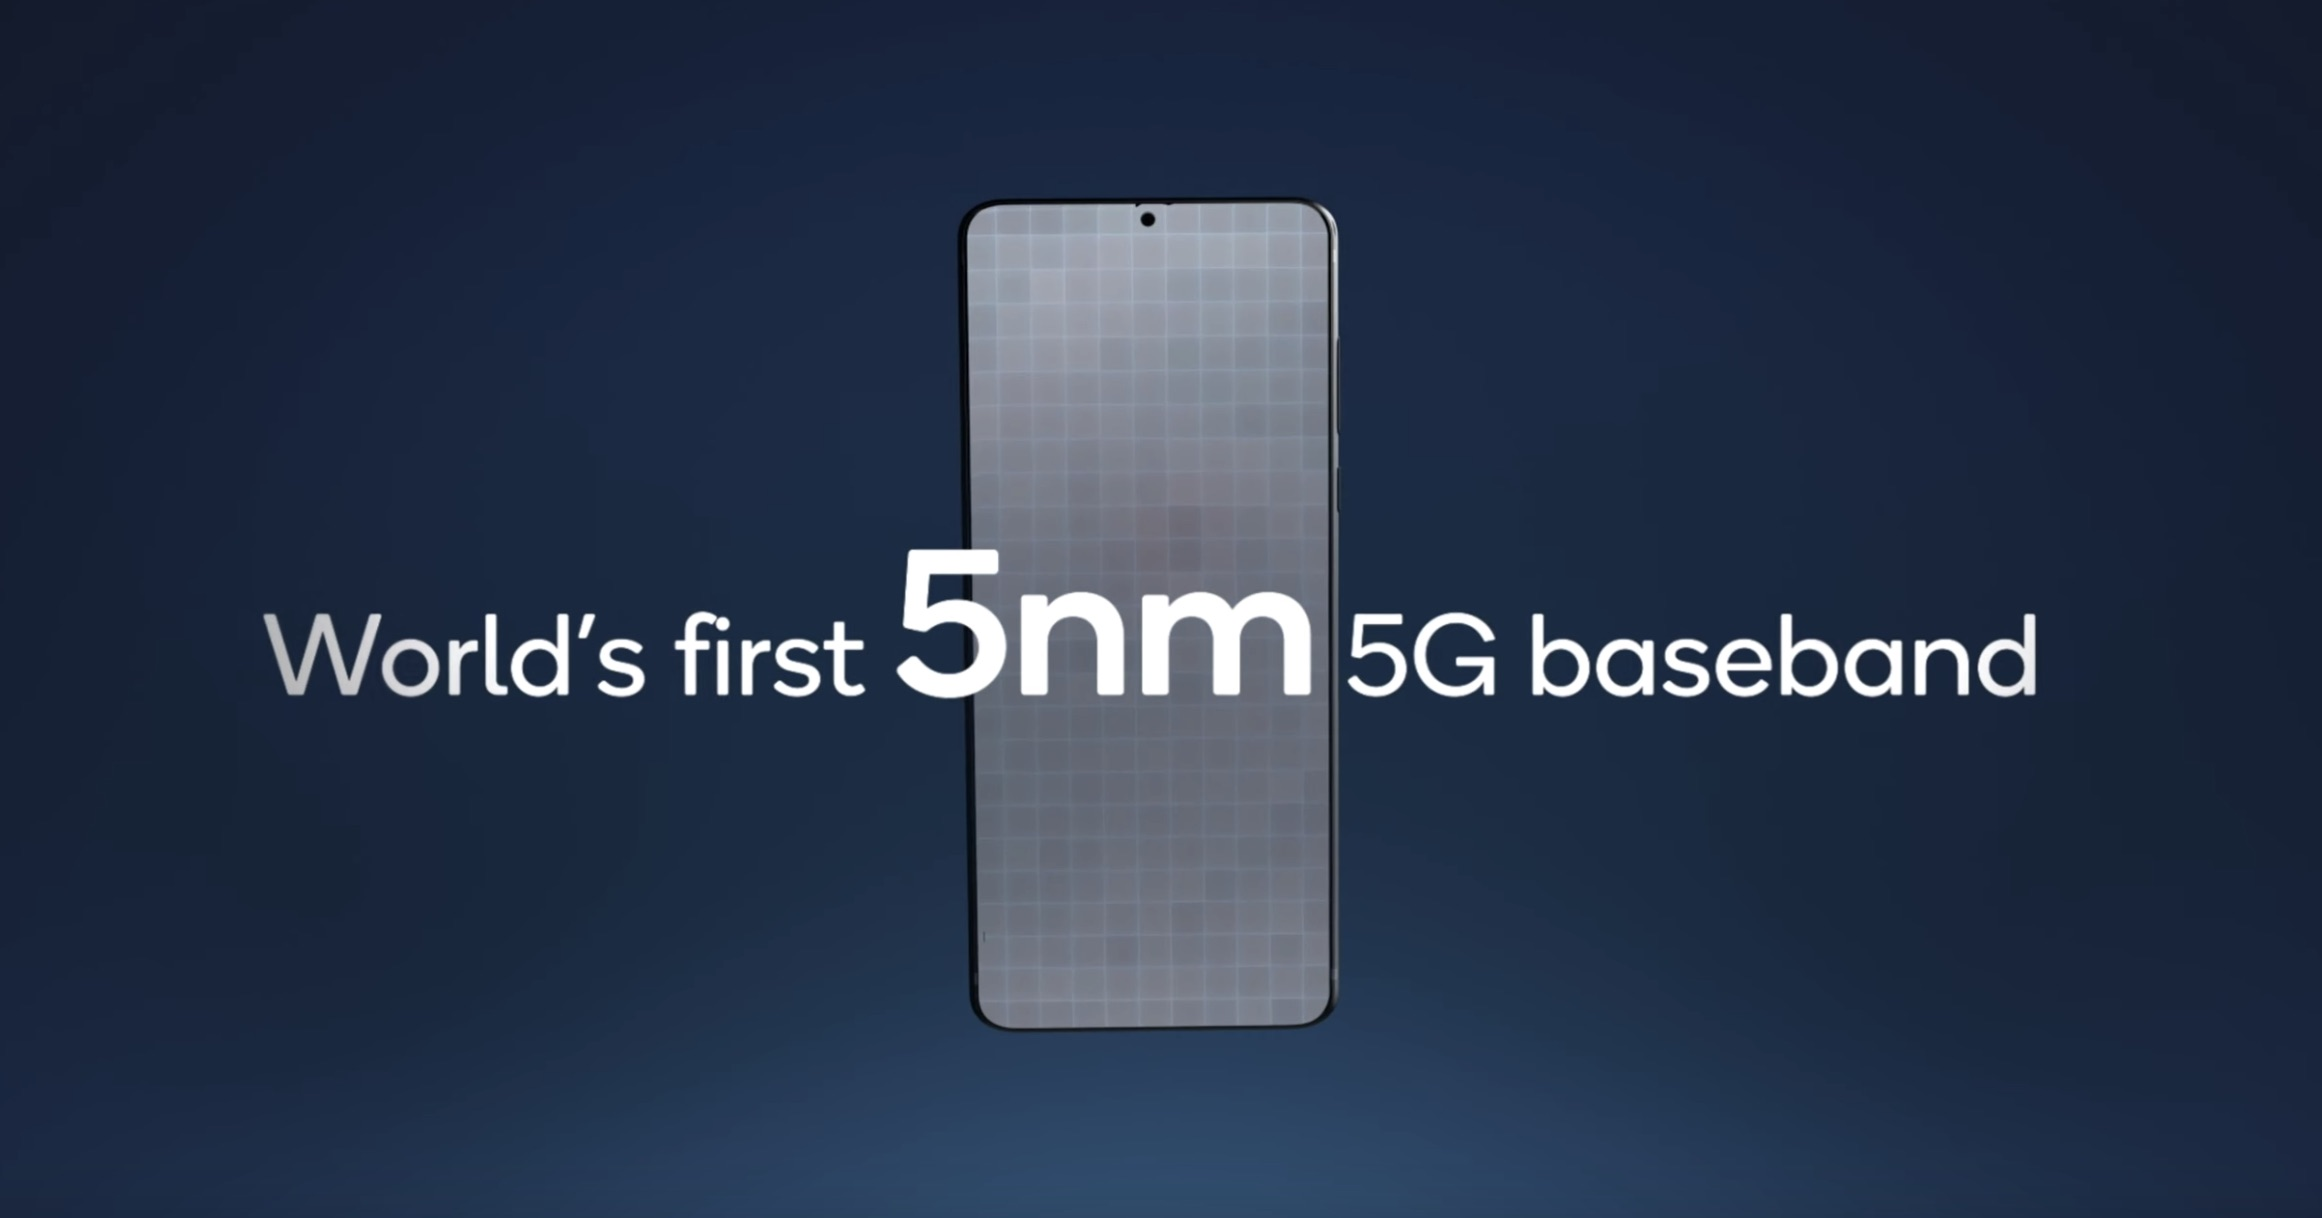 DigiTimes Claims 2020 iPhones Will Use Qualcomm X60 Modem, Despite Previous Rumors Agreeing on X55